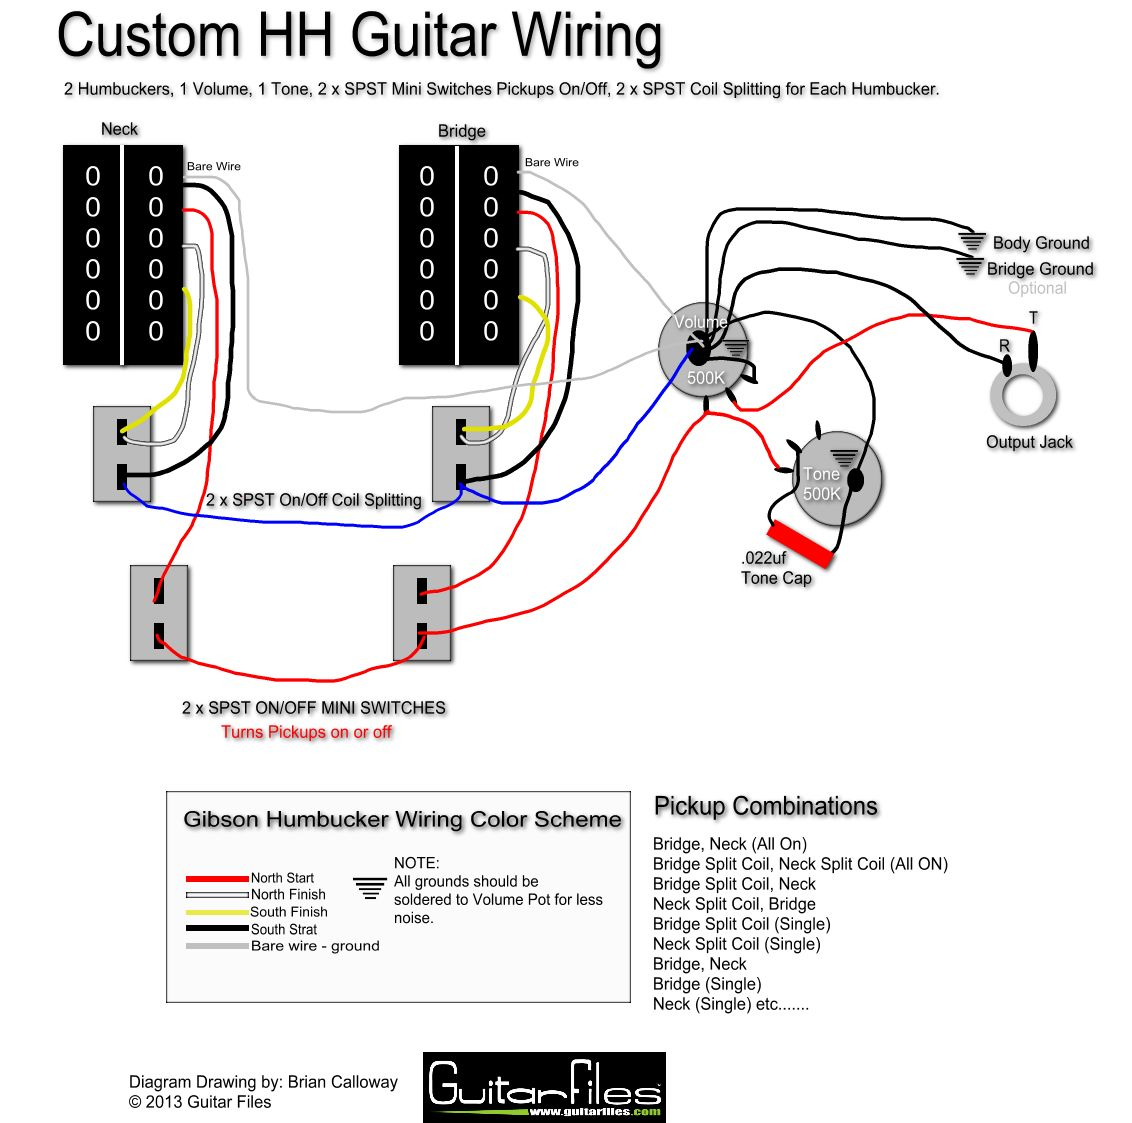 Custom HH Wiring Diagram With SPST Coil Splitting and SPST Switching Guitar  Pickups, Guitar Building